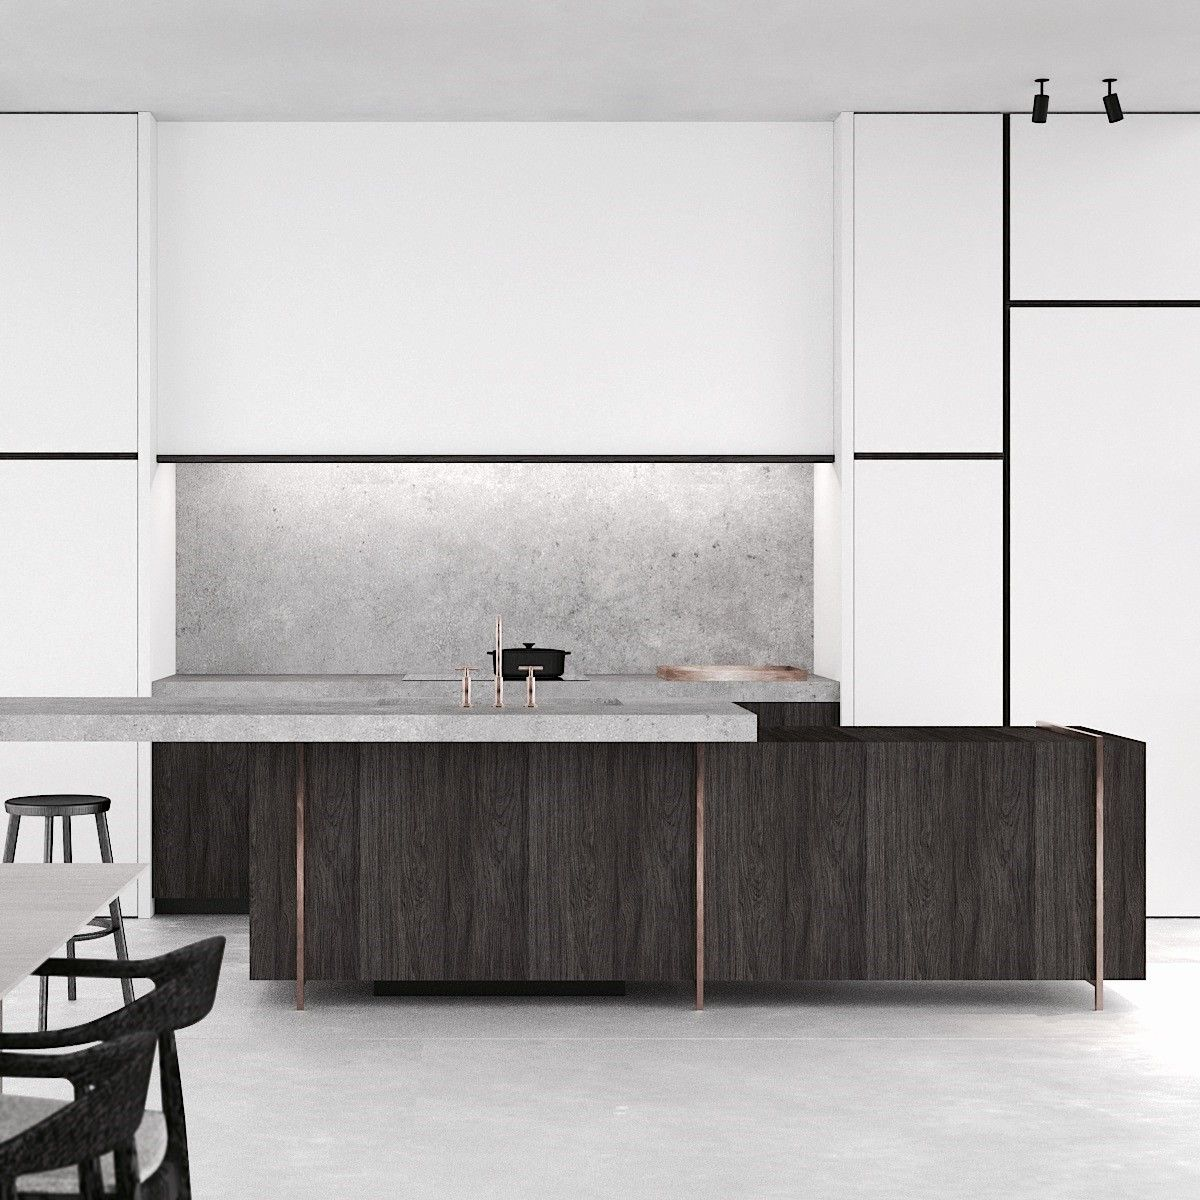 Minimalistic Modern Luxury Kitchen Island Design With: PS Extension In Spiere-Helkijn Belgium By AD